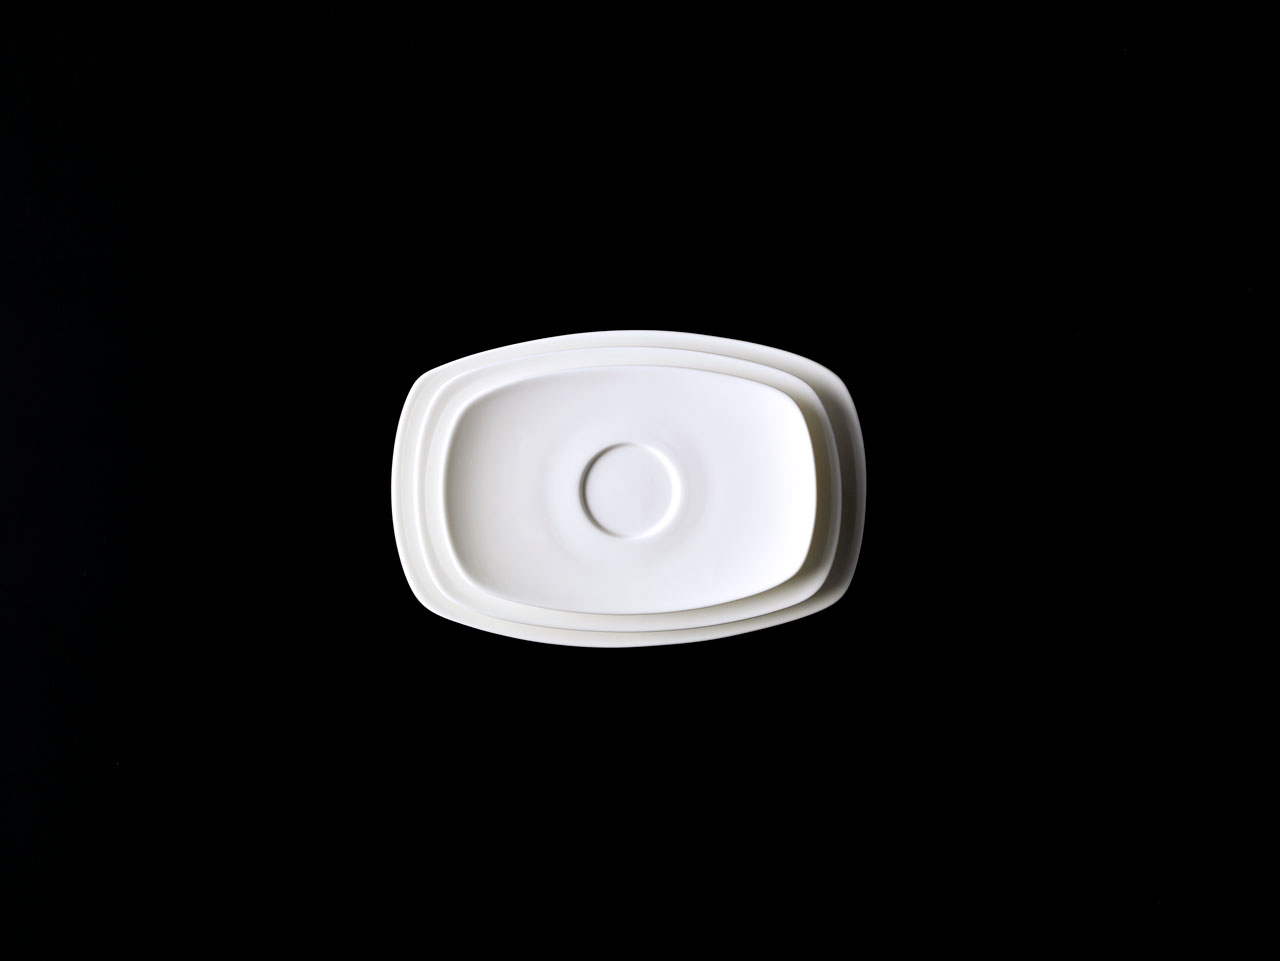 Bent Brandt - TABL white bone china S1 saucer, oval plate and oval platter